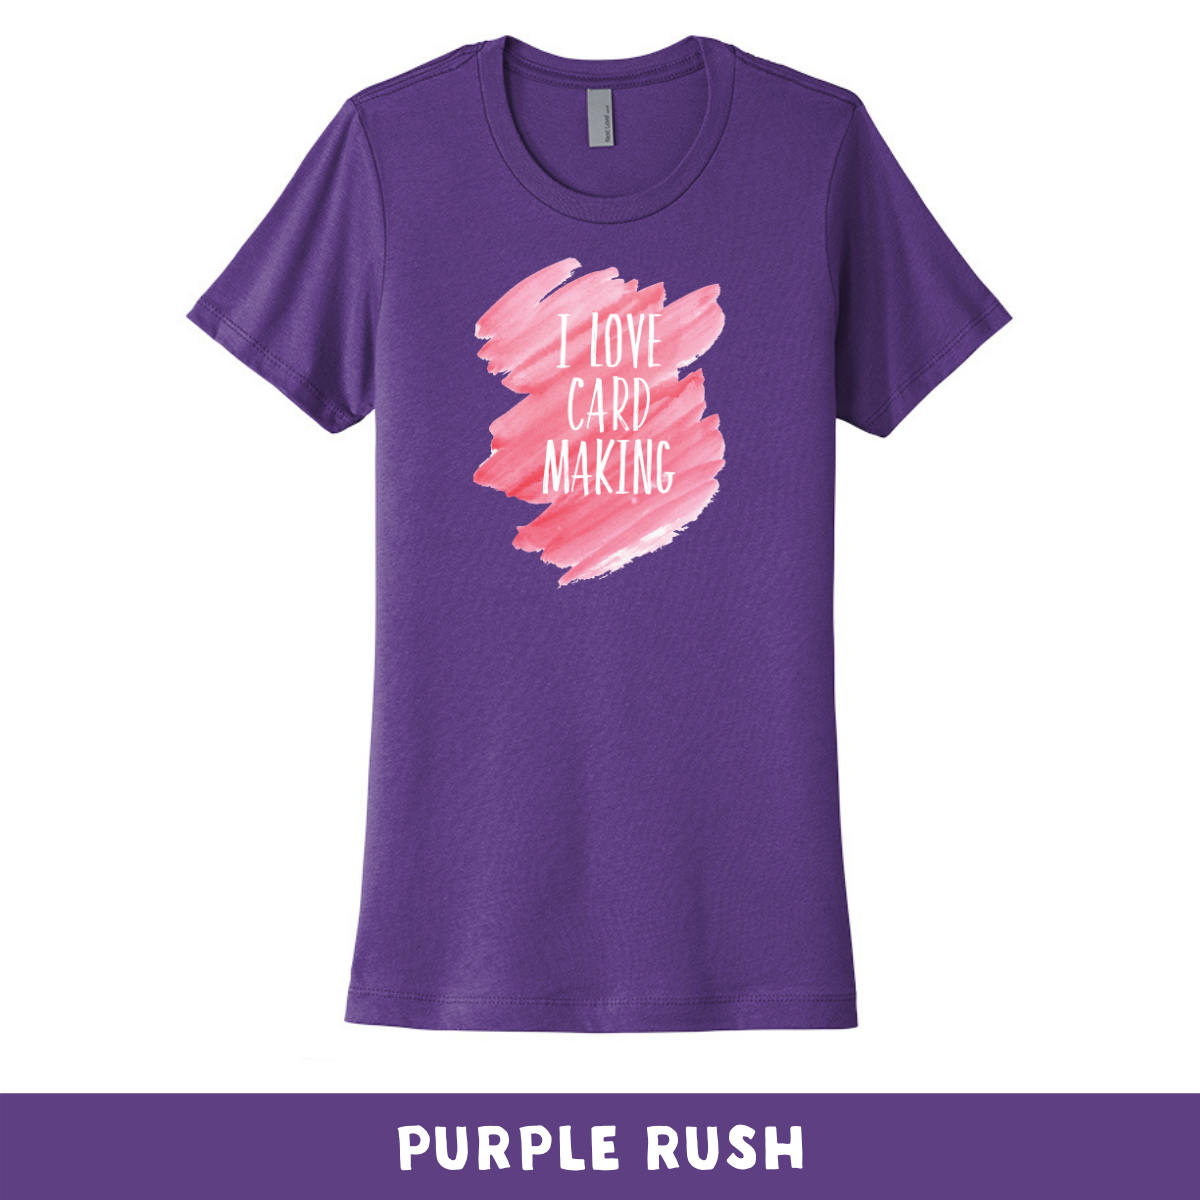 Purple Rush - Crew Neck Boyfriend Tee - I Love Cardmaking